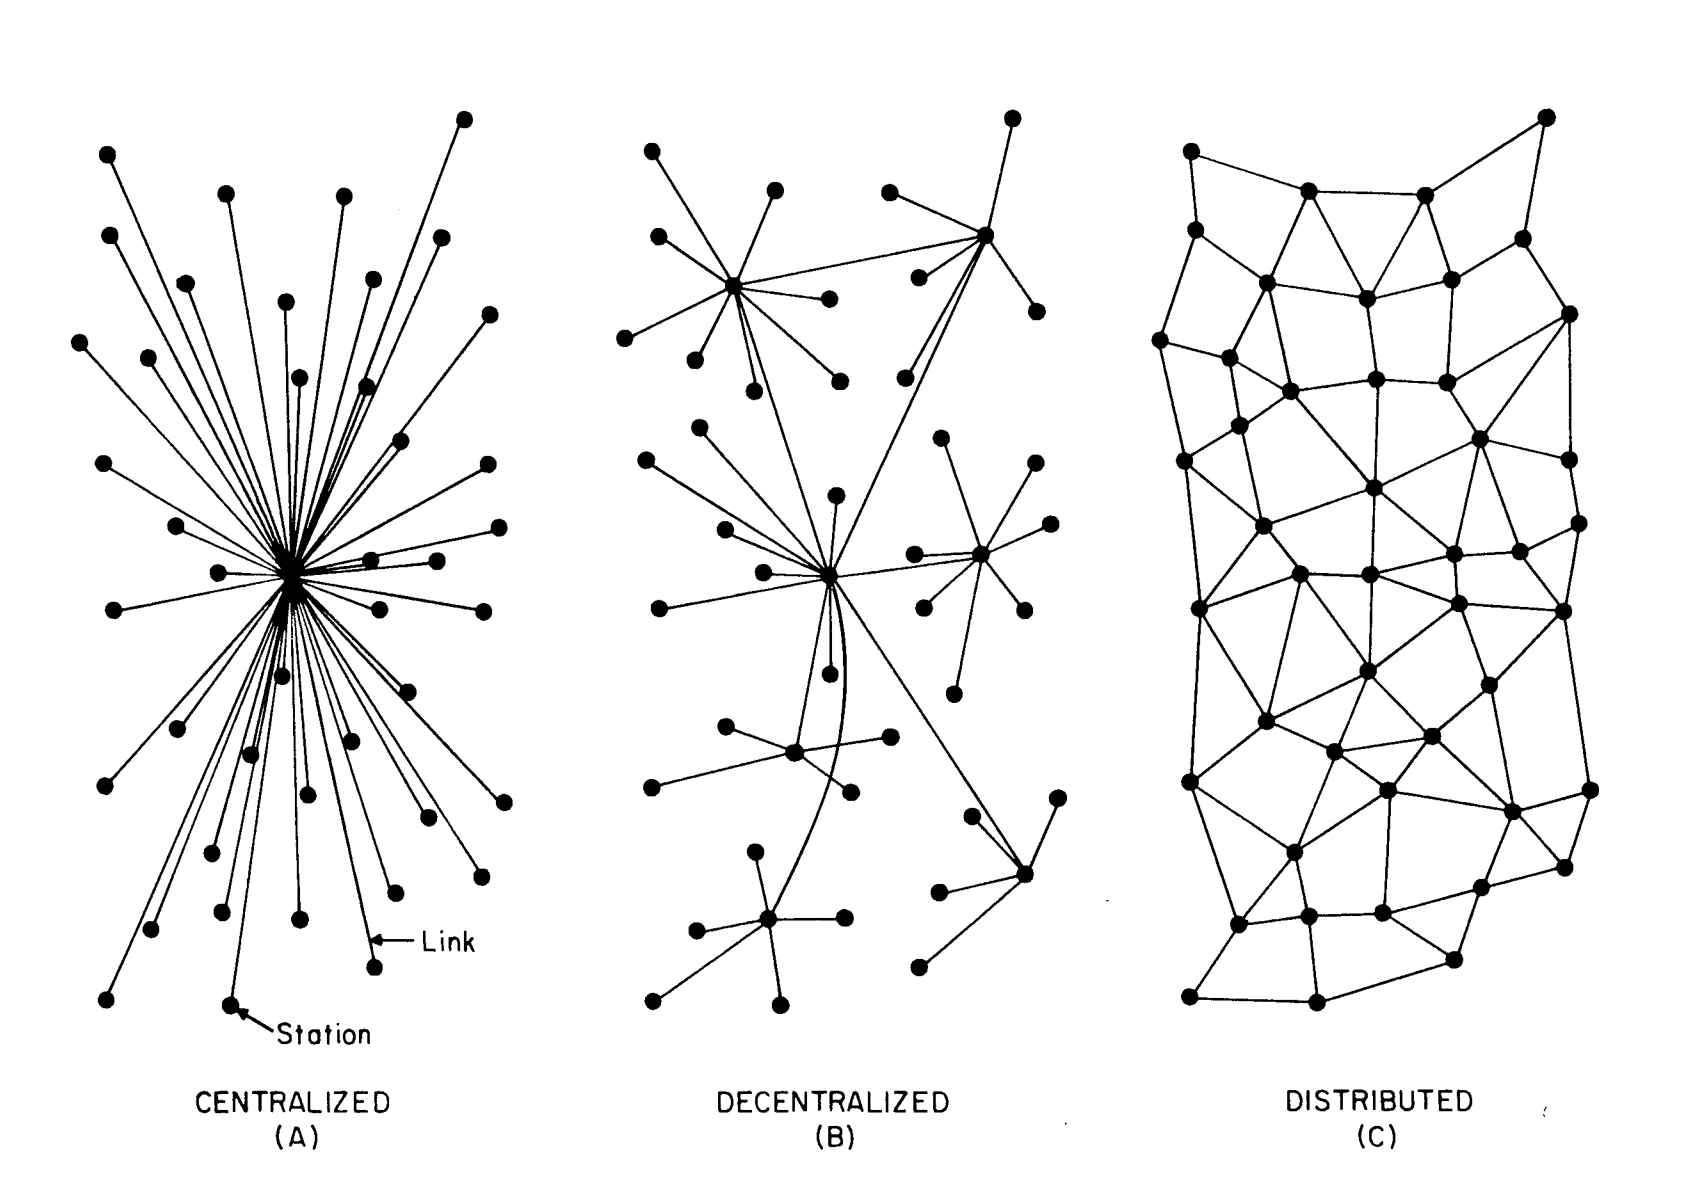 The different types of networks.